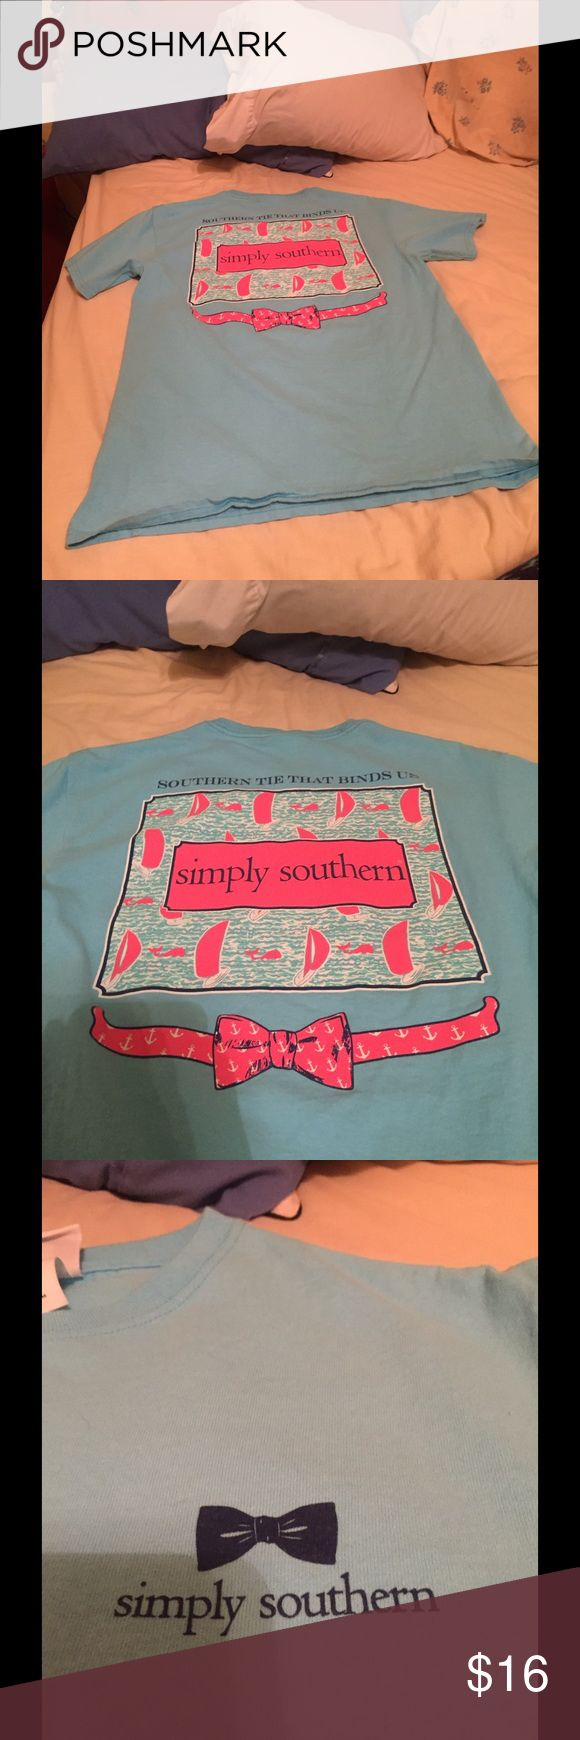 Simply southern shirt Super cute simply southern shirt. Wore the most of 2 times. In excellent condition just have too many simply southern shirts. Lowest price is $13!!!! Can bundle all 3 simply southern shirts for $35or 2 for $25!! Let me know if you have any questions! Tops Tees - Short Sleeve